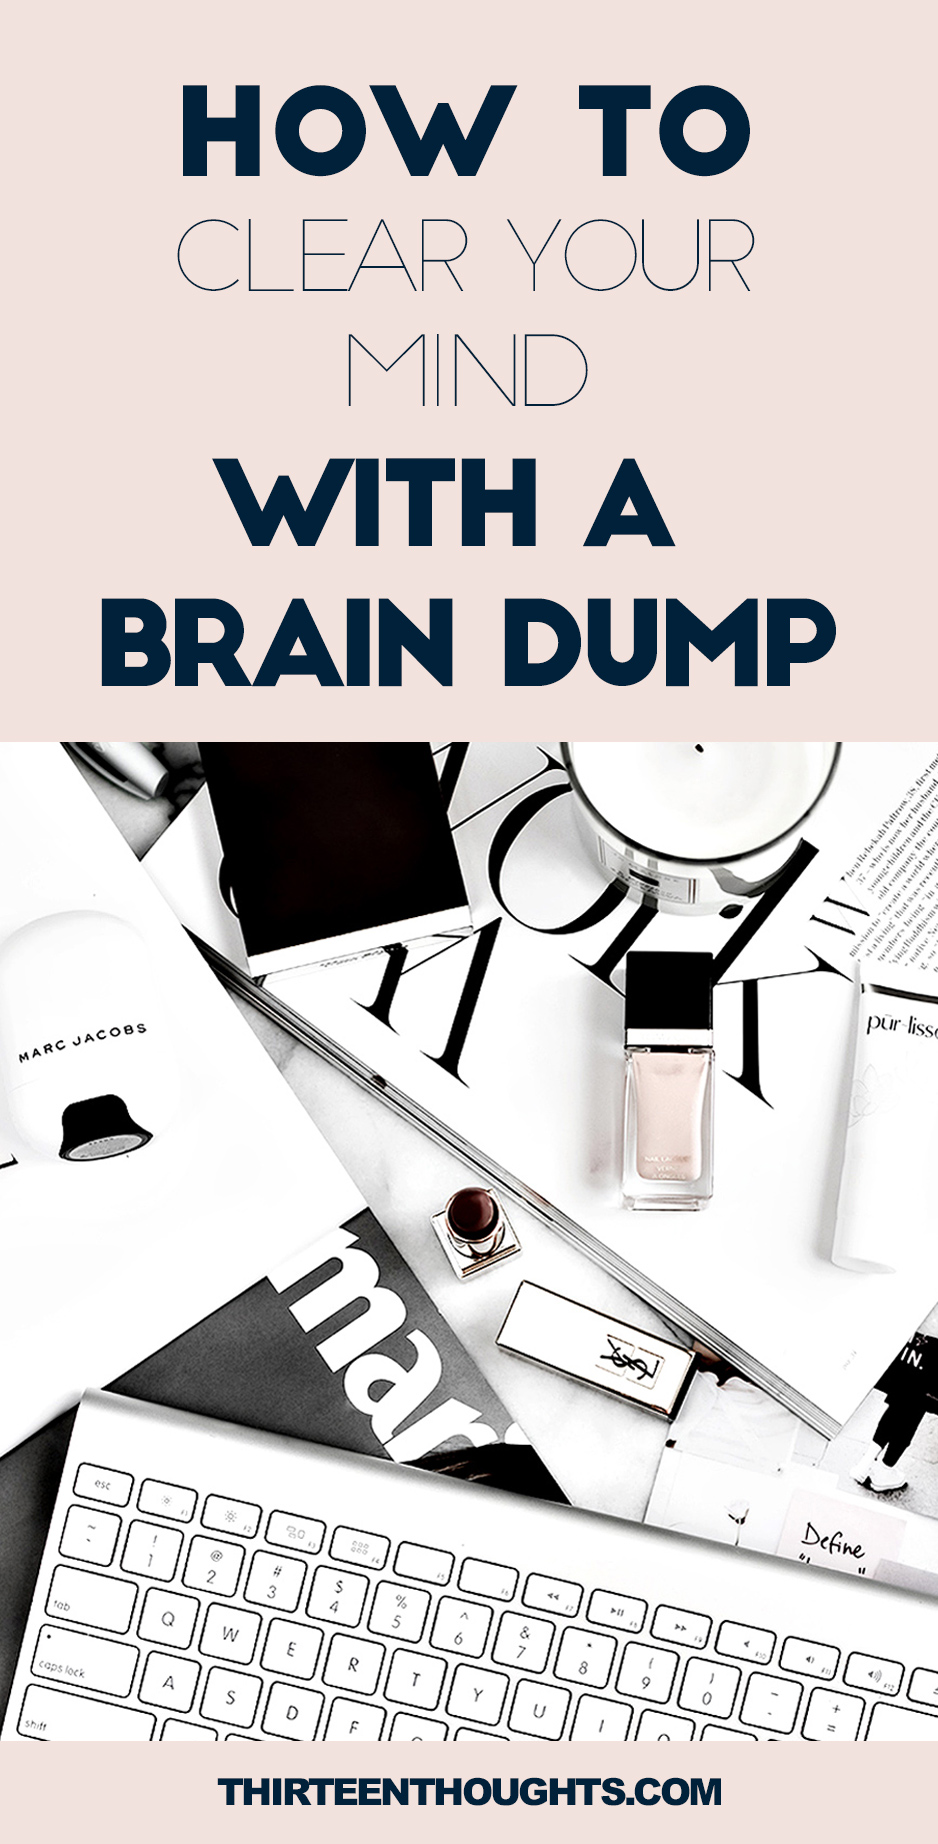 How to Clear Your Mind with a Brain Dump